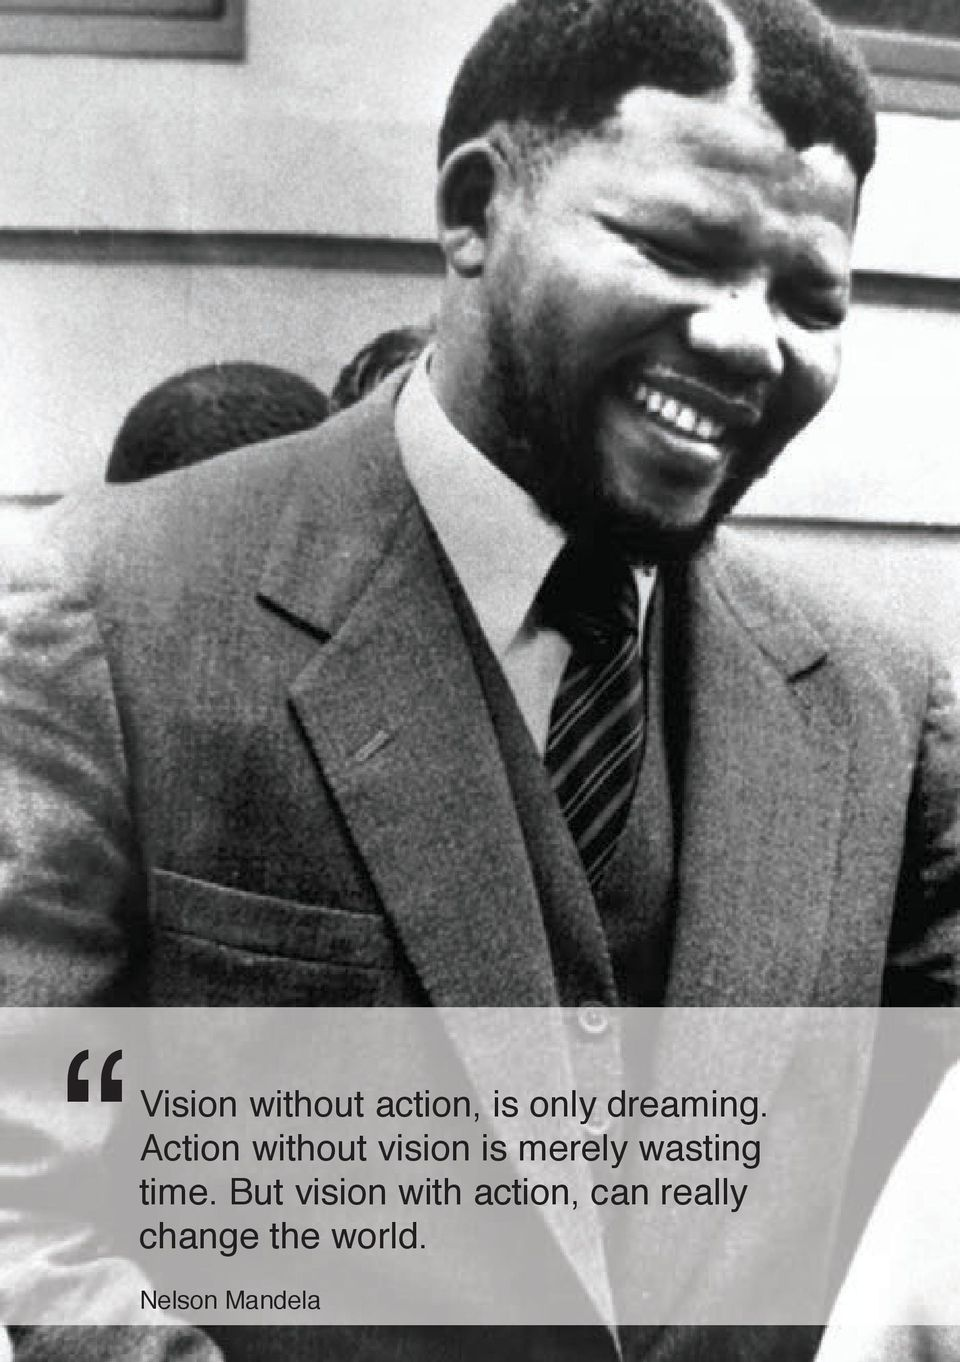 Action without vision is merely